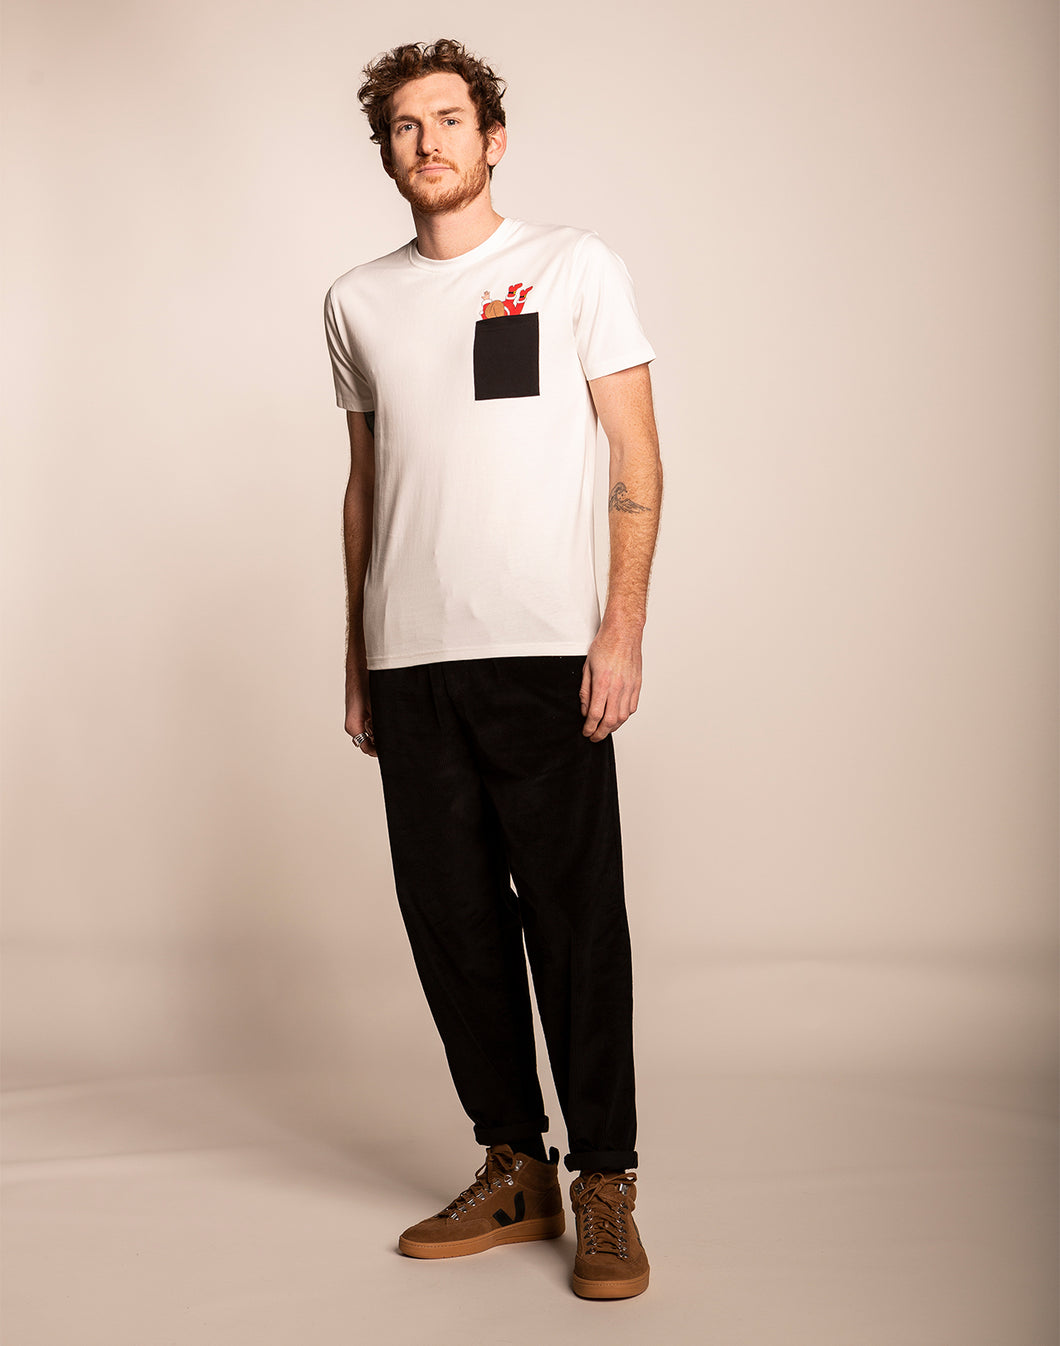 Coin-Coin Tee Off-White